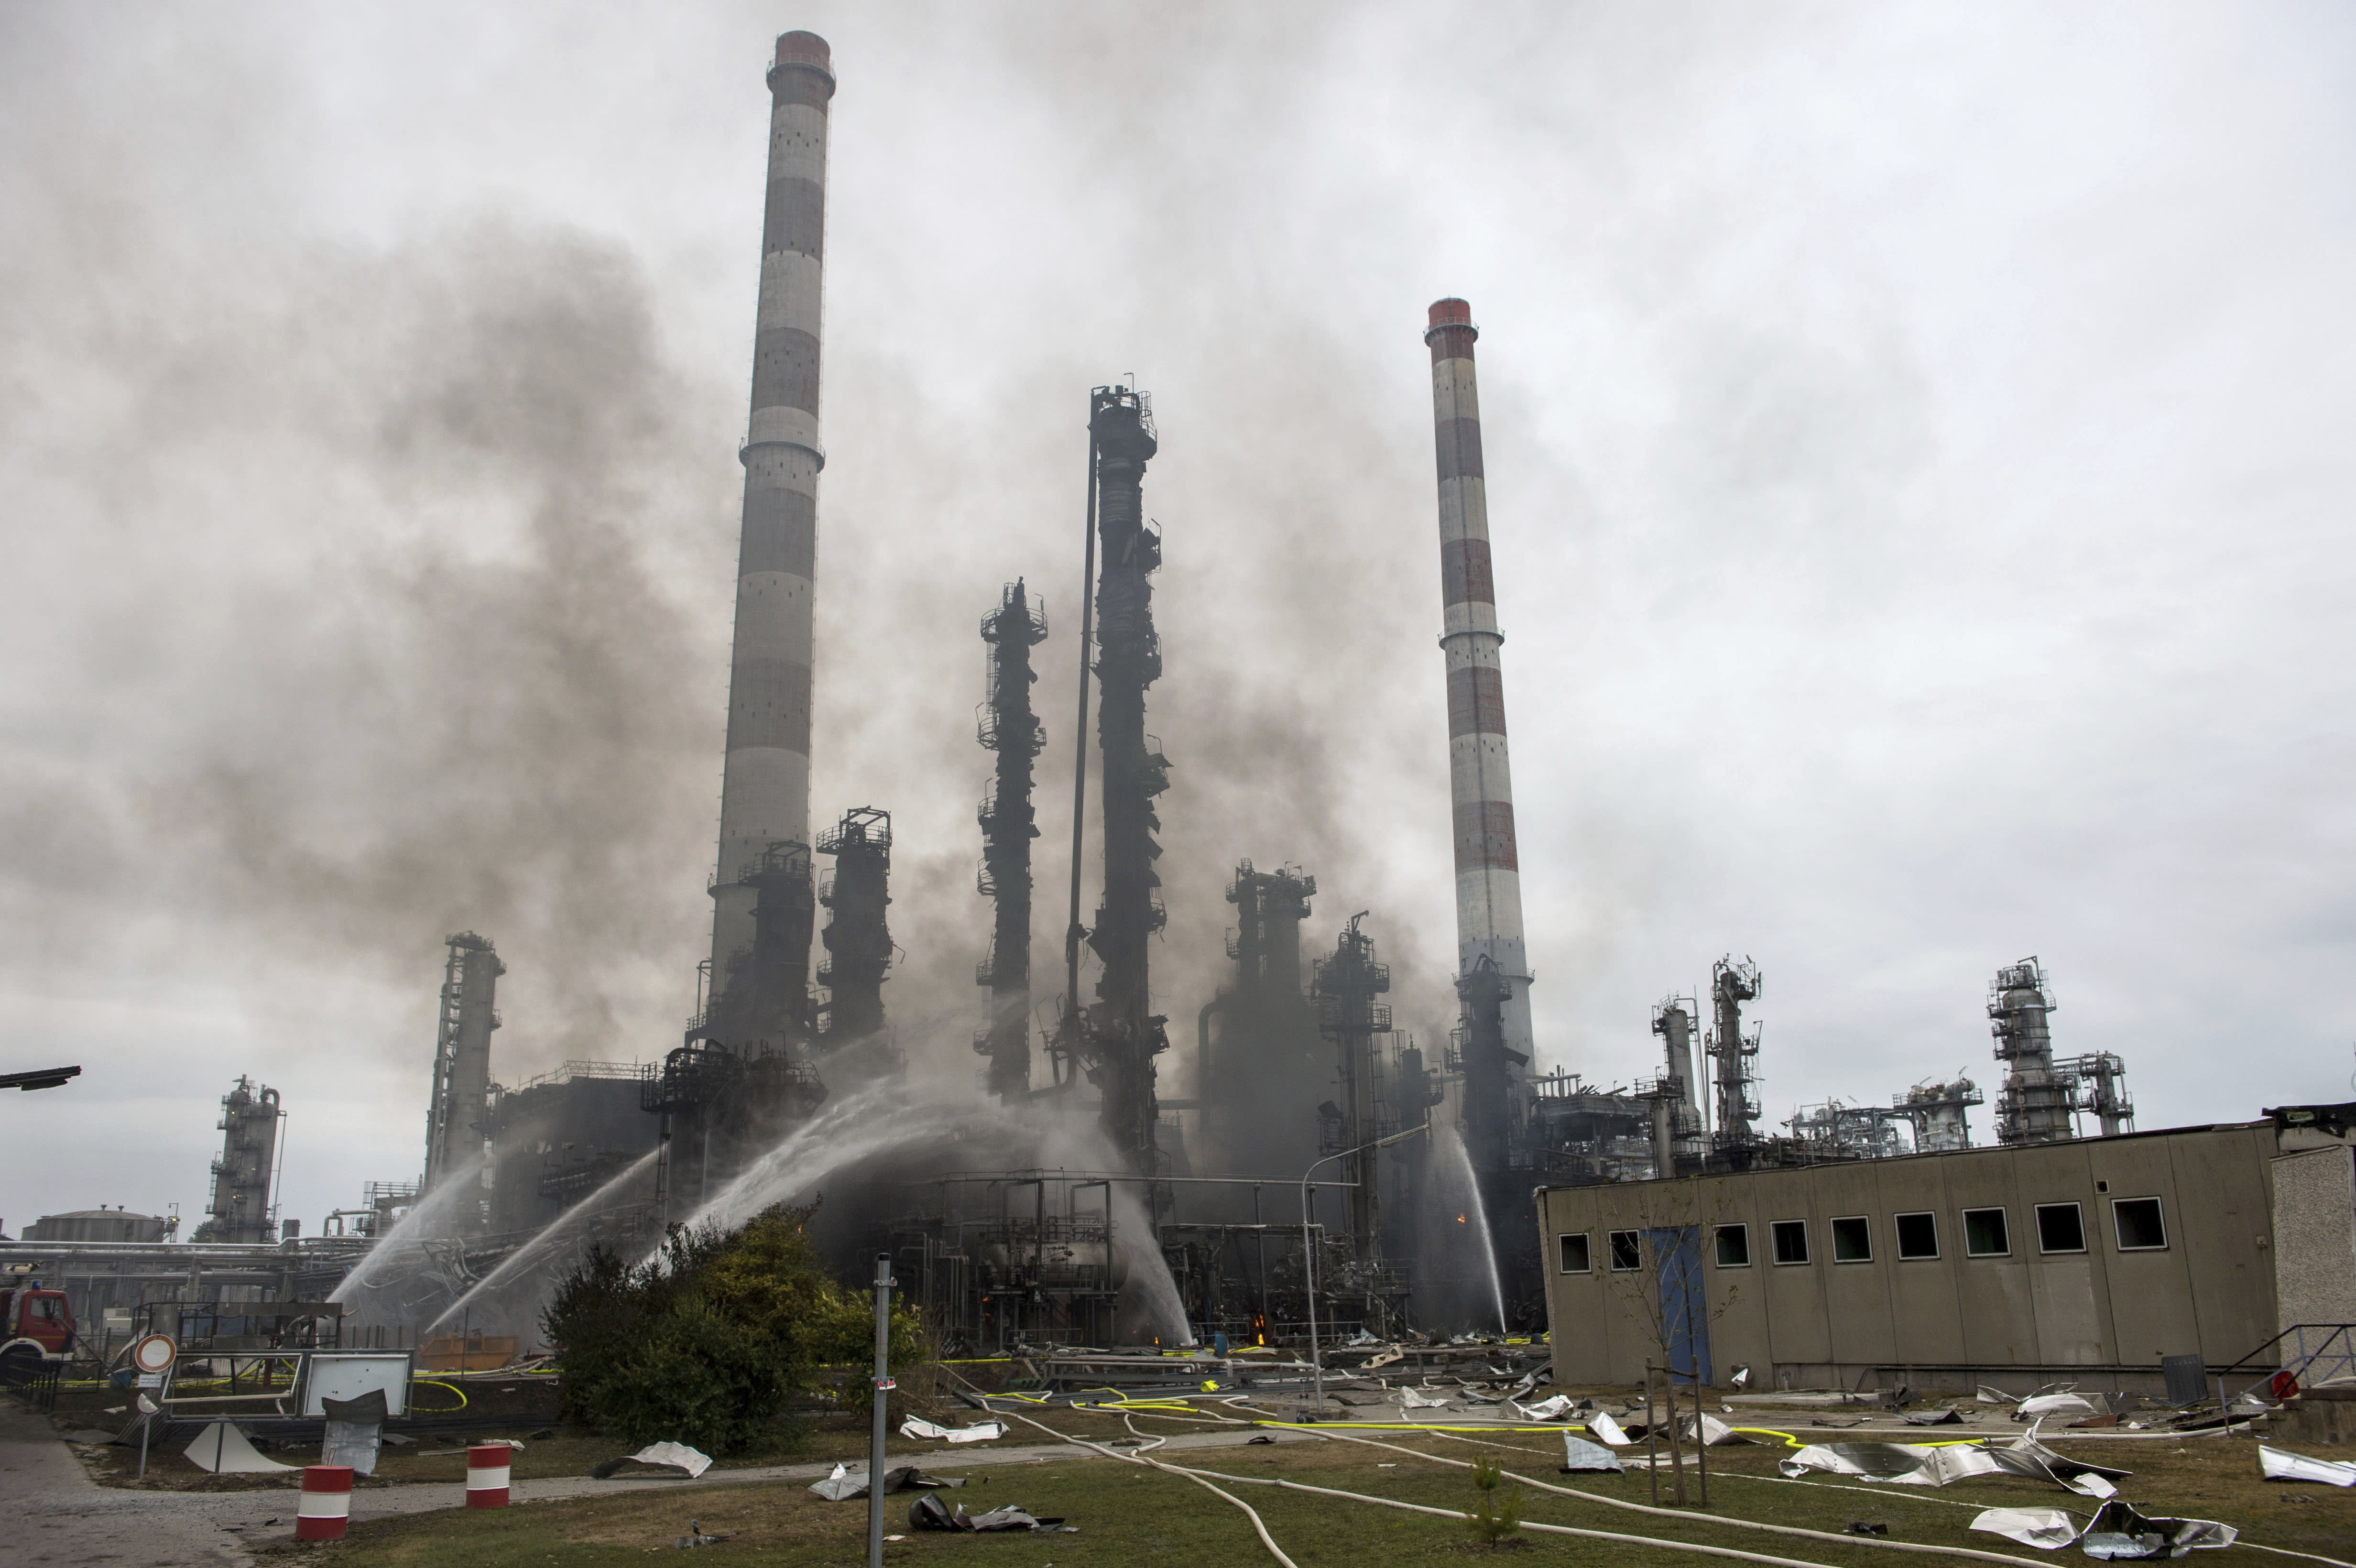 Some rises over the area of a Bayernoil refinery in Vohburg an der Donau near Ingolstadt, southern Germany, Saturday, Sept. 1, 2018 after a fire broke out. (Lino Mirgeler/dpa via AP)